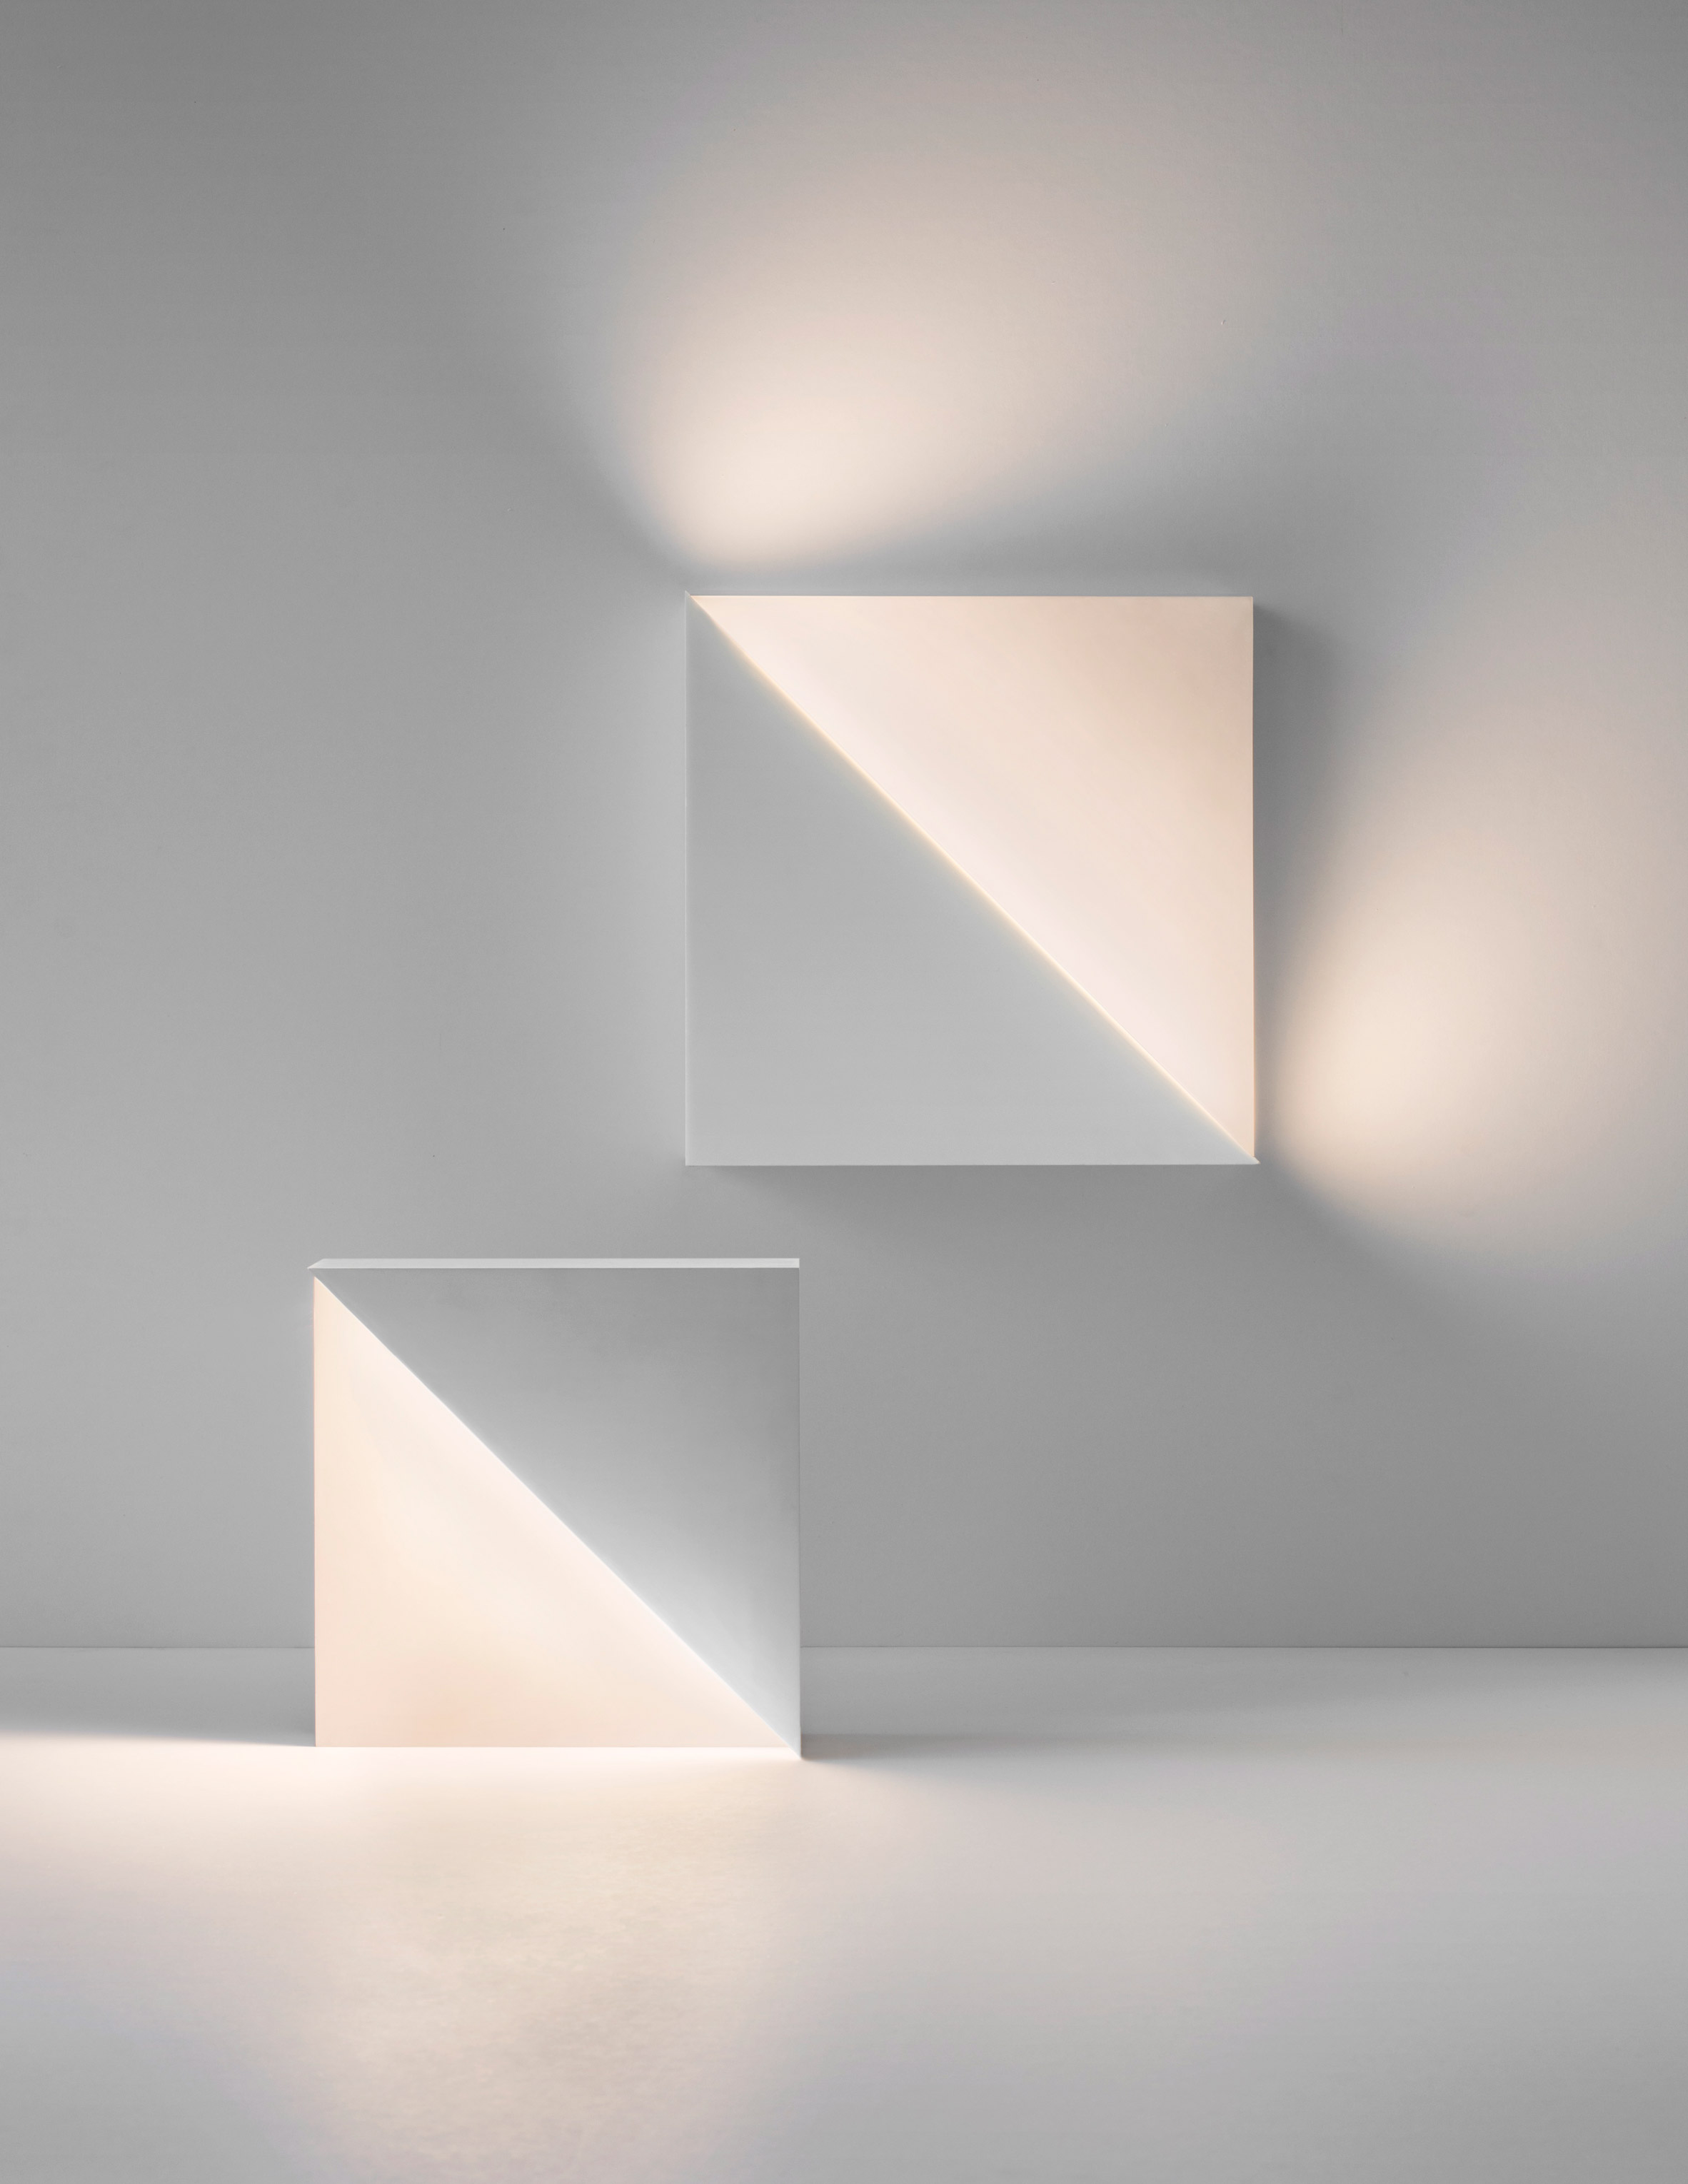 Fall in Love with Richard Meier's Minimal Lighting Collection 1 lighting collection Fall in Love with Richard Meier's Minimal Lighting Collection Fall in Love with Richard Meiers Minimal Lighting Collection 5